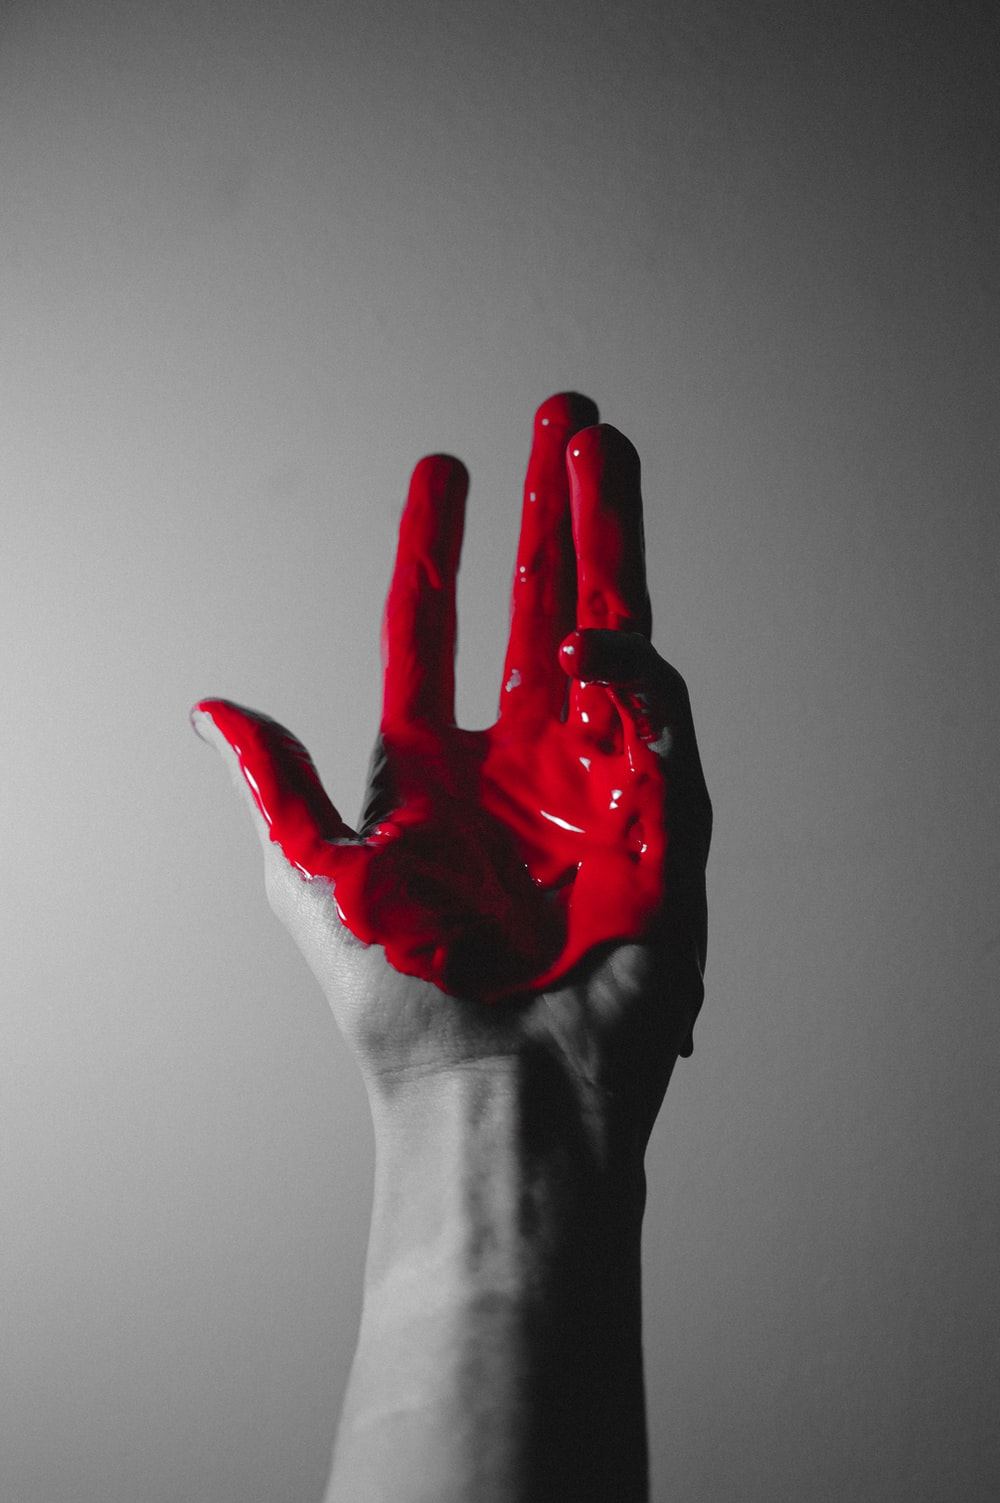 red hand paint on hand